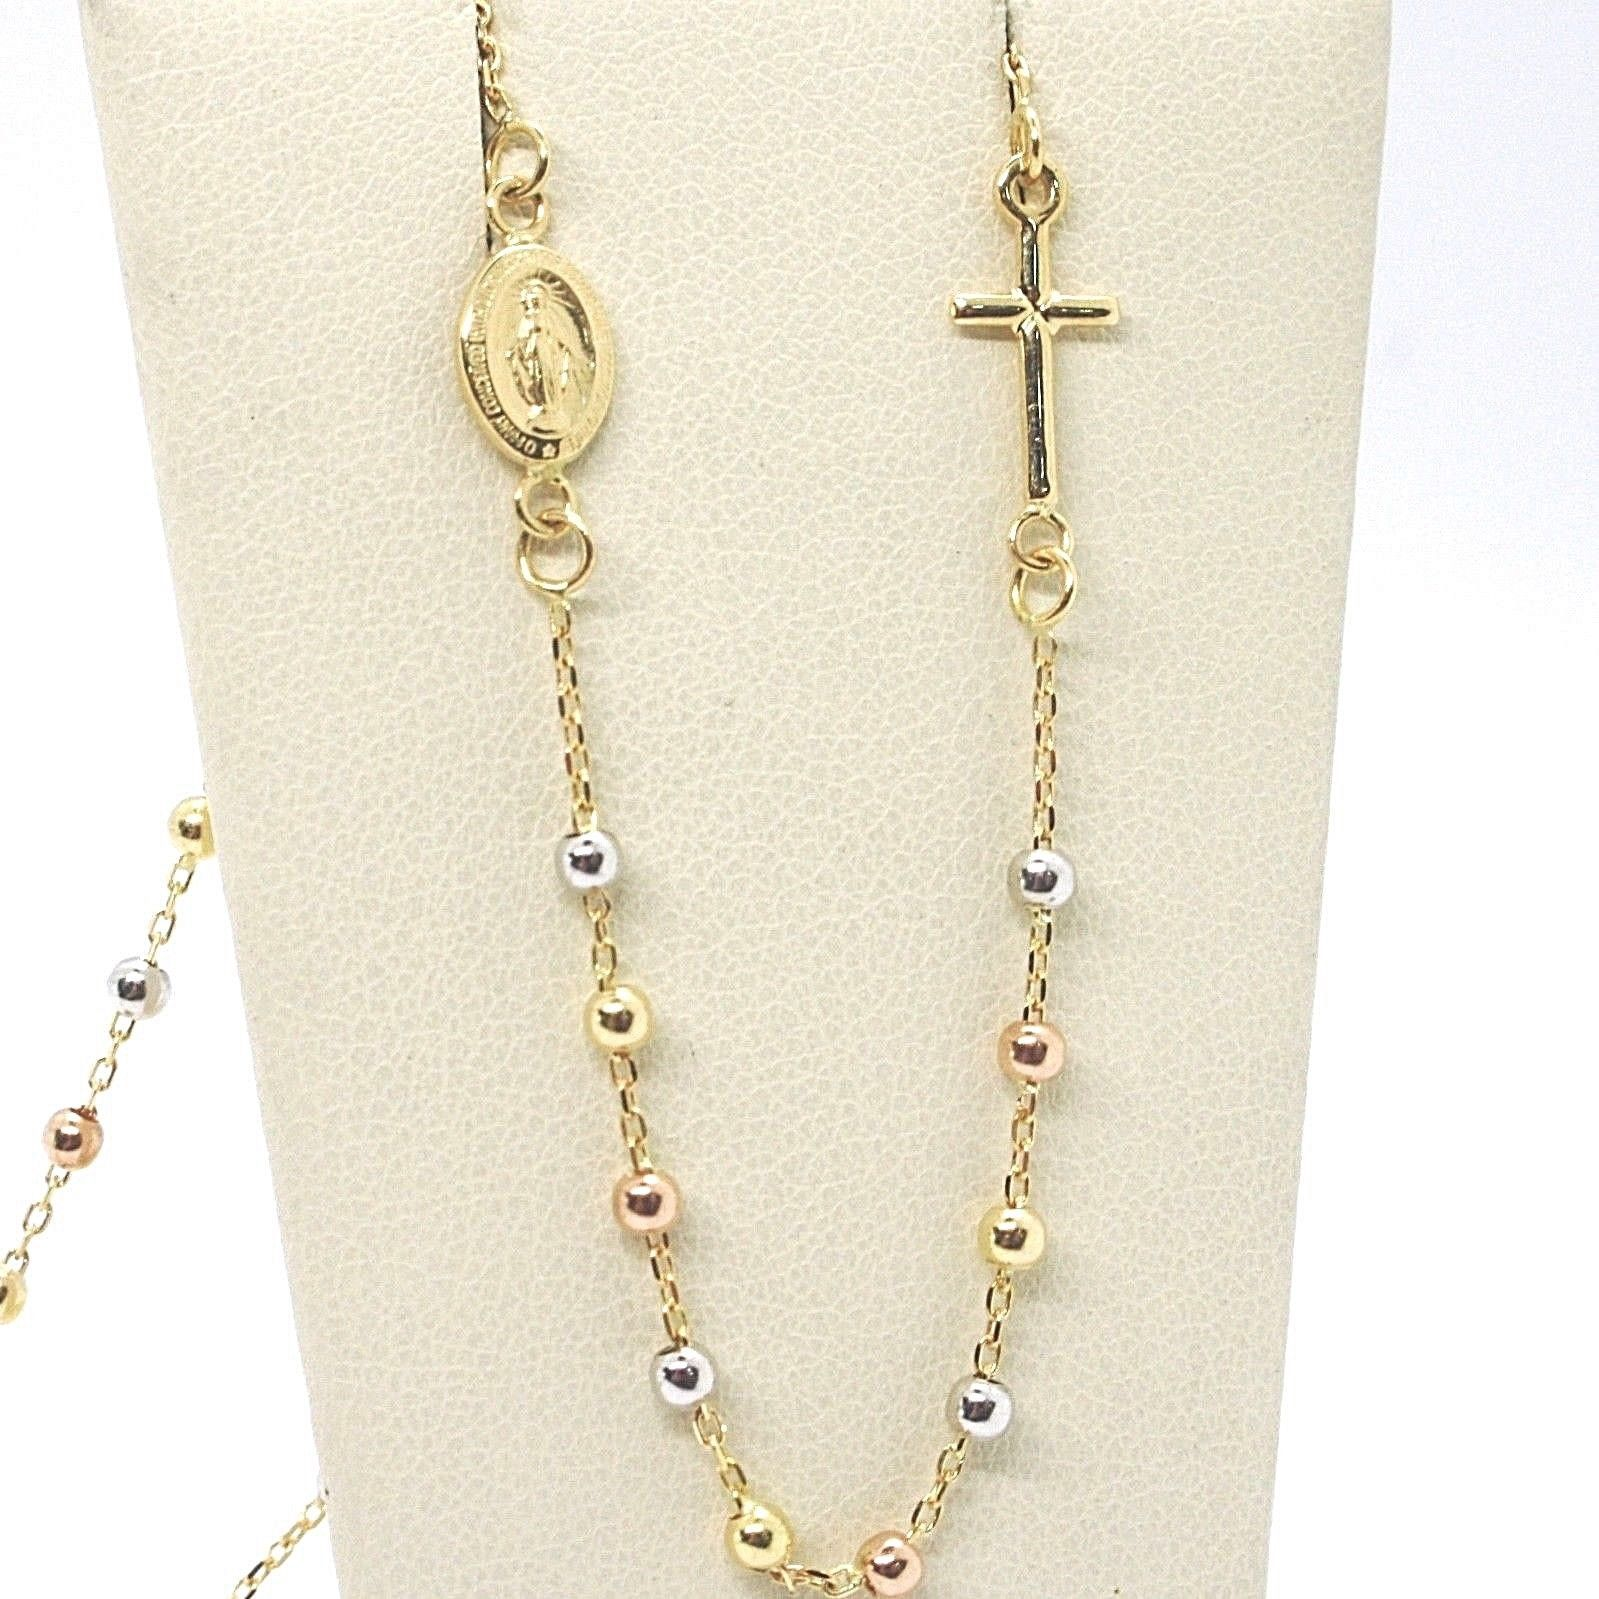 18K YELLOW WHITE ROSE GOLD ROSARY NECKLACE MIRACULOUS MEDAL TUBE CROSS, ITALY